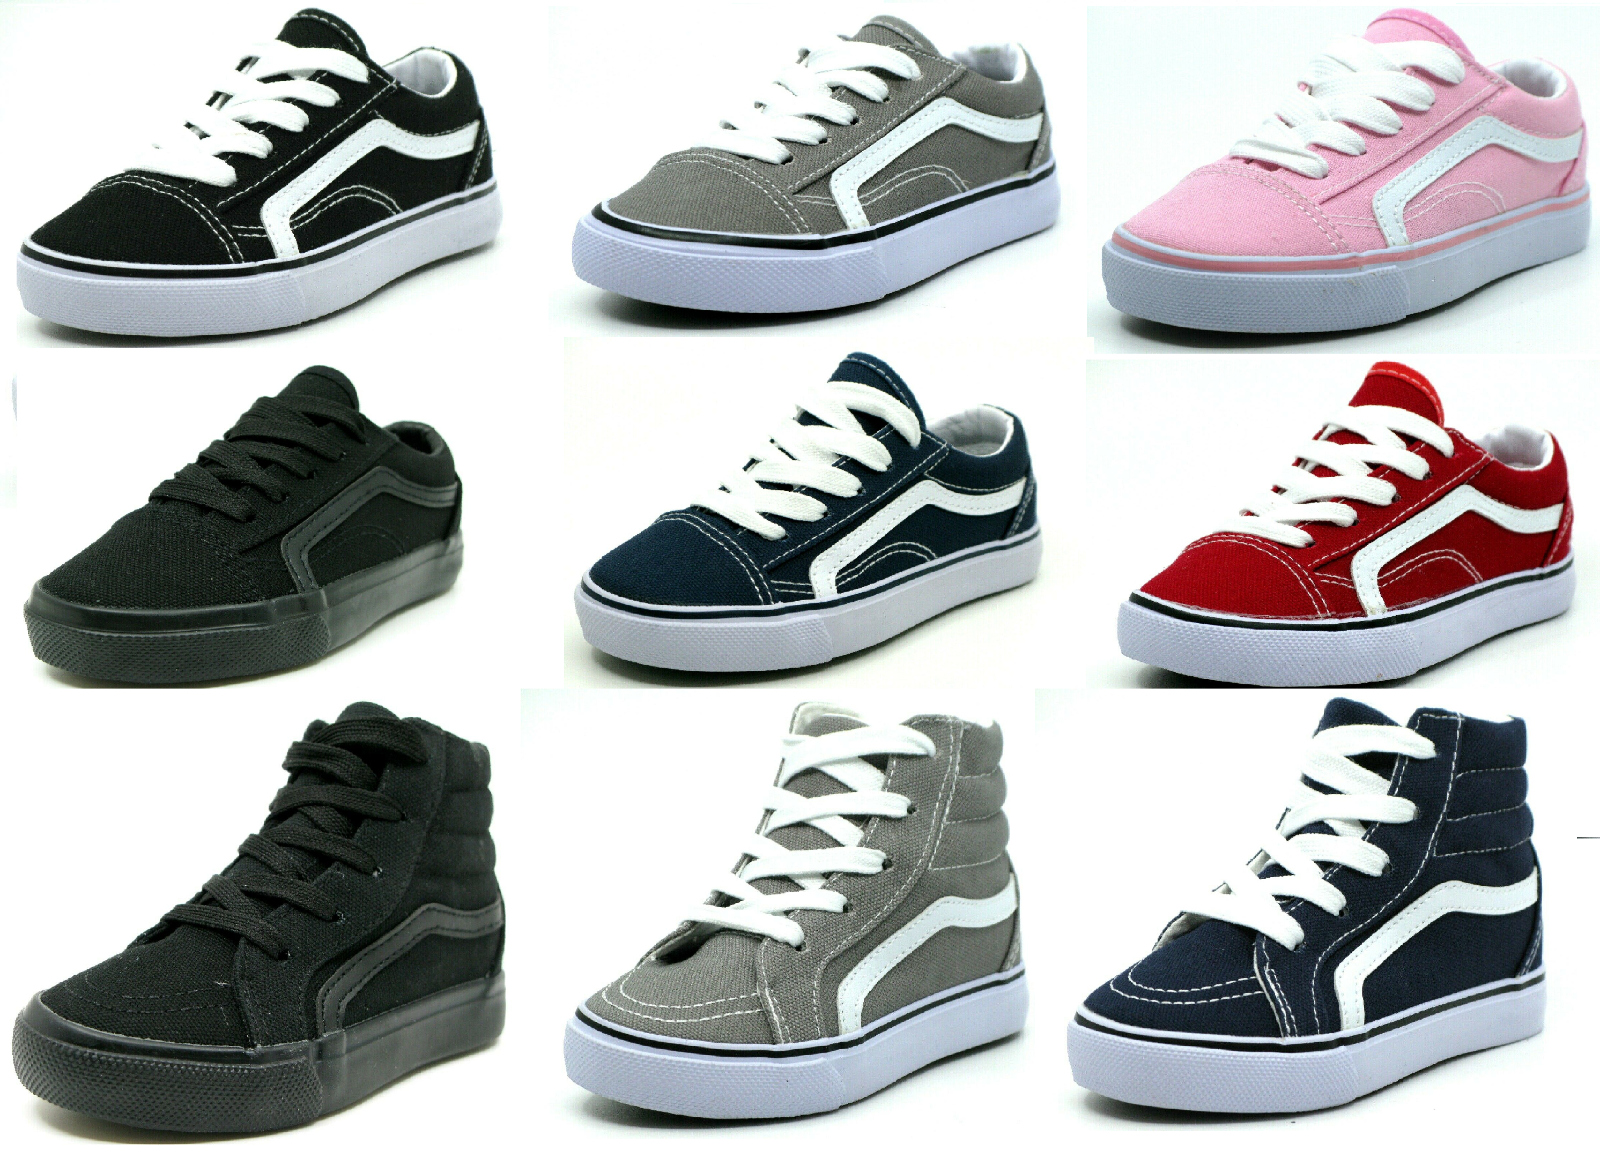 New Lace Up Low Top And Hi Top Baby Toddler Boy Or Girl Canv